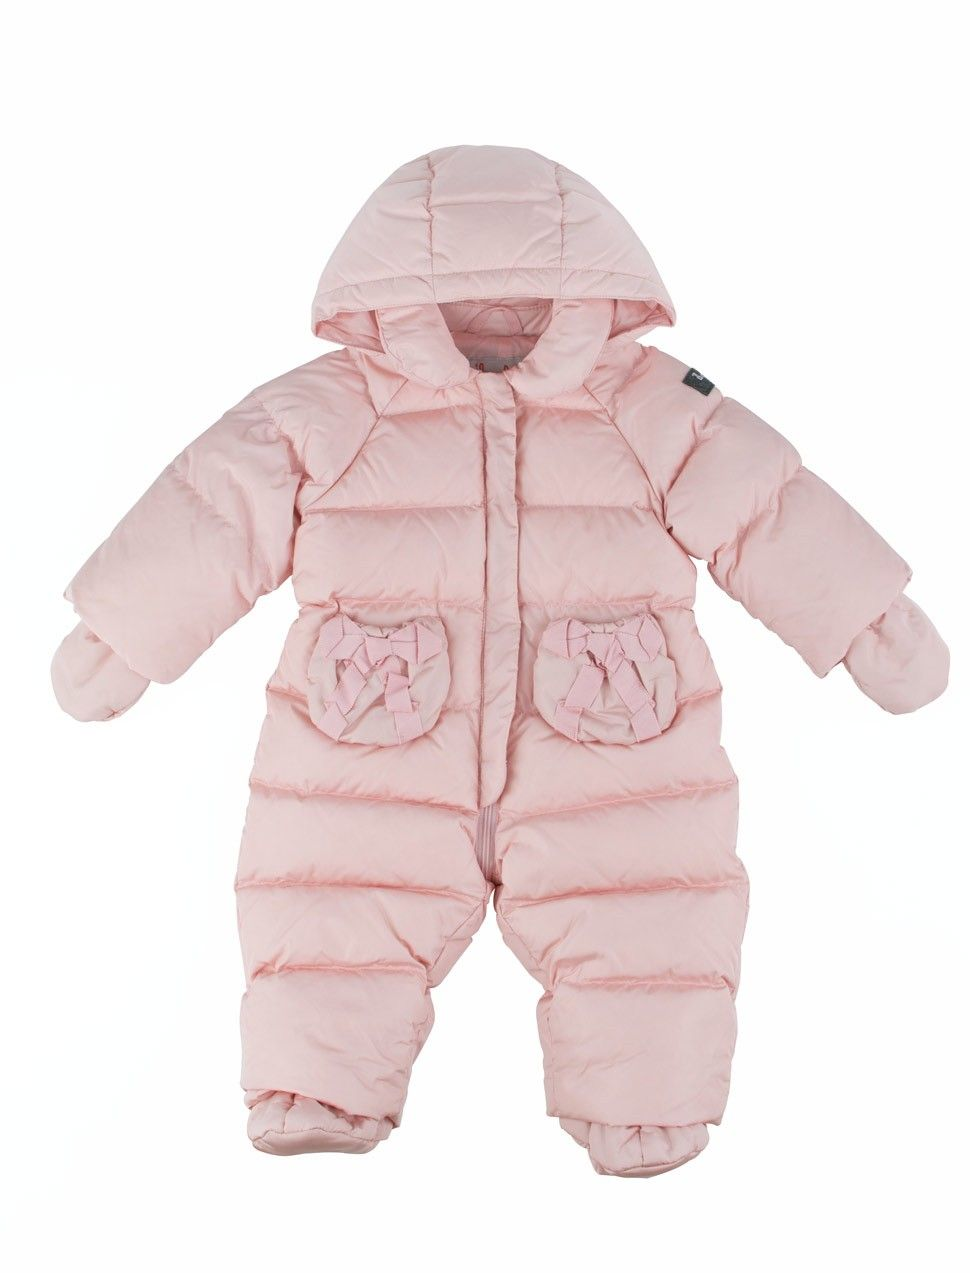 7459d21b3 Down-filled wadded pink baby girl snowsuit from Il Gufo